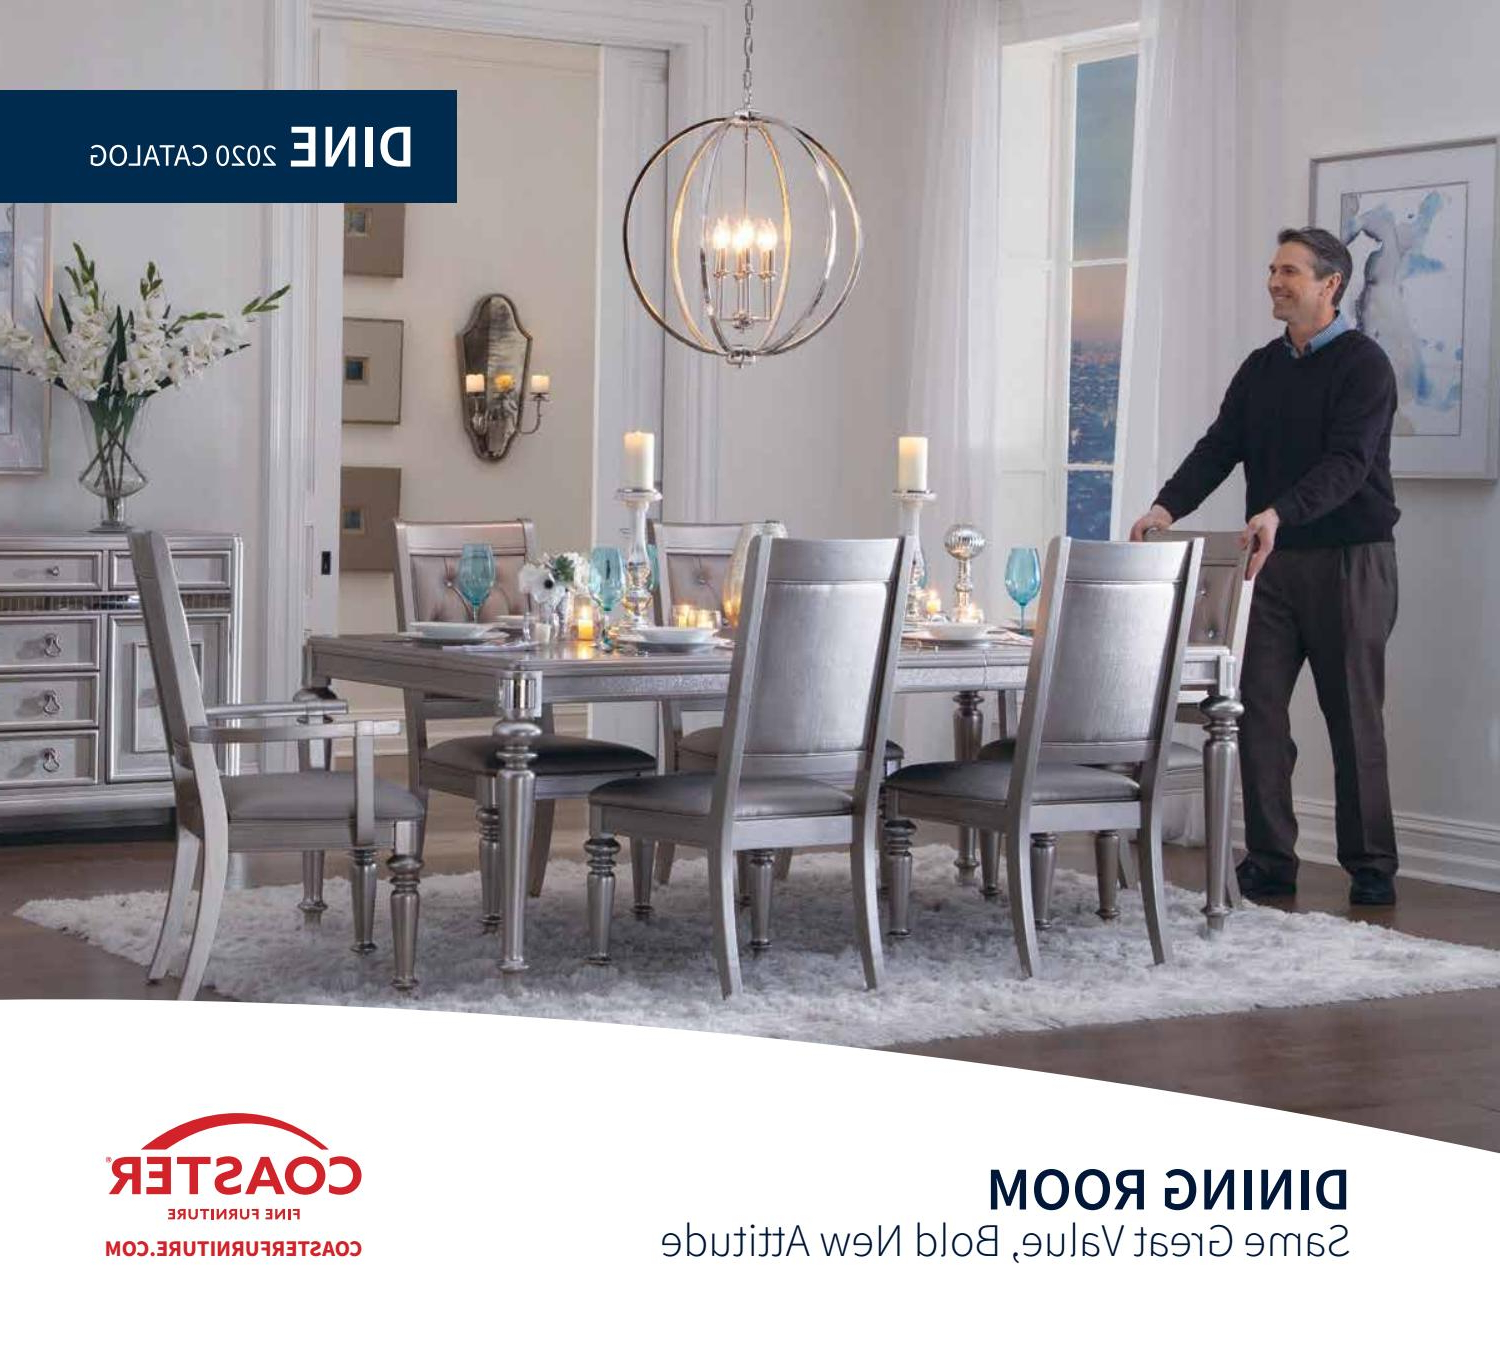 Trendy Transitional 4 Seating Drop Leaf Casual Dining Tables For 2020 Coaster Catalog Dinecoaster Company Of America – Issuu (View 23 of 25)